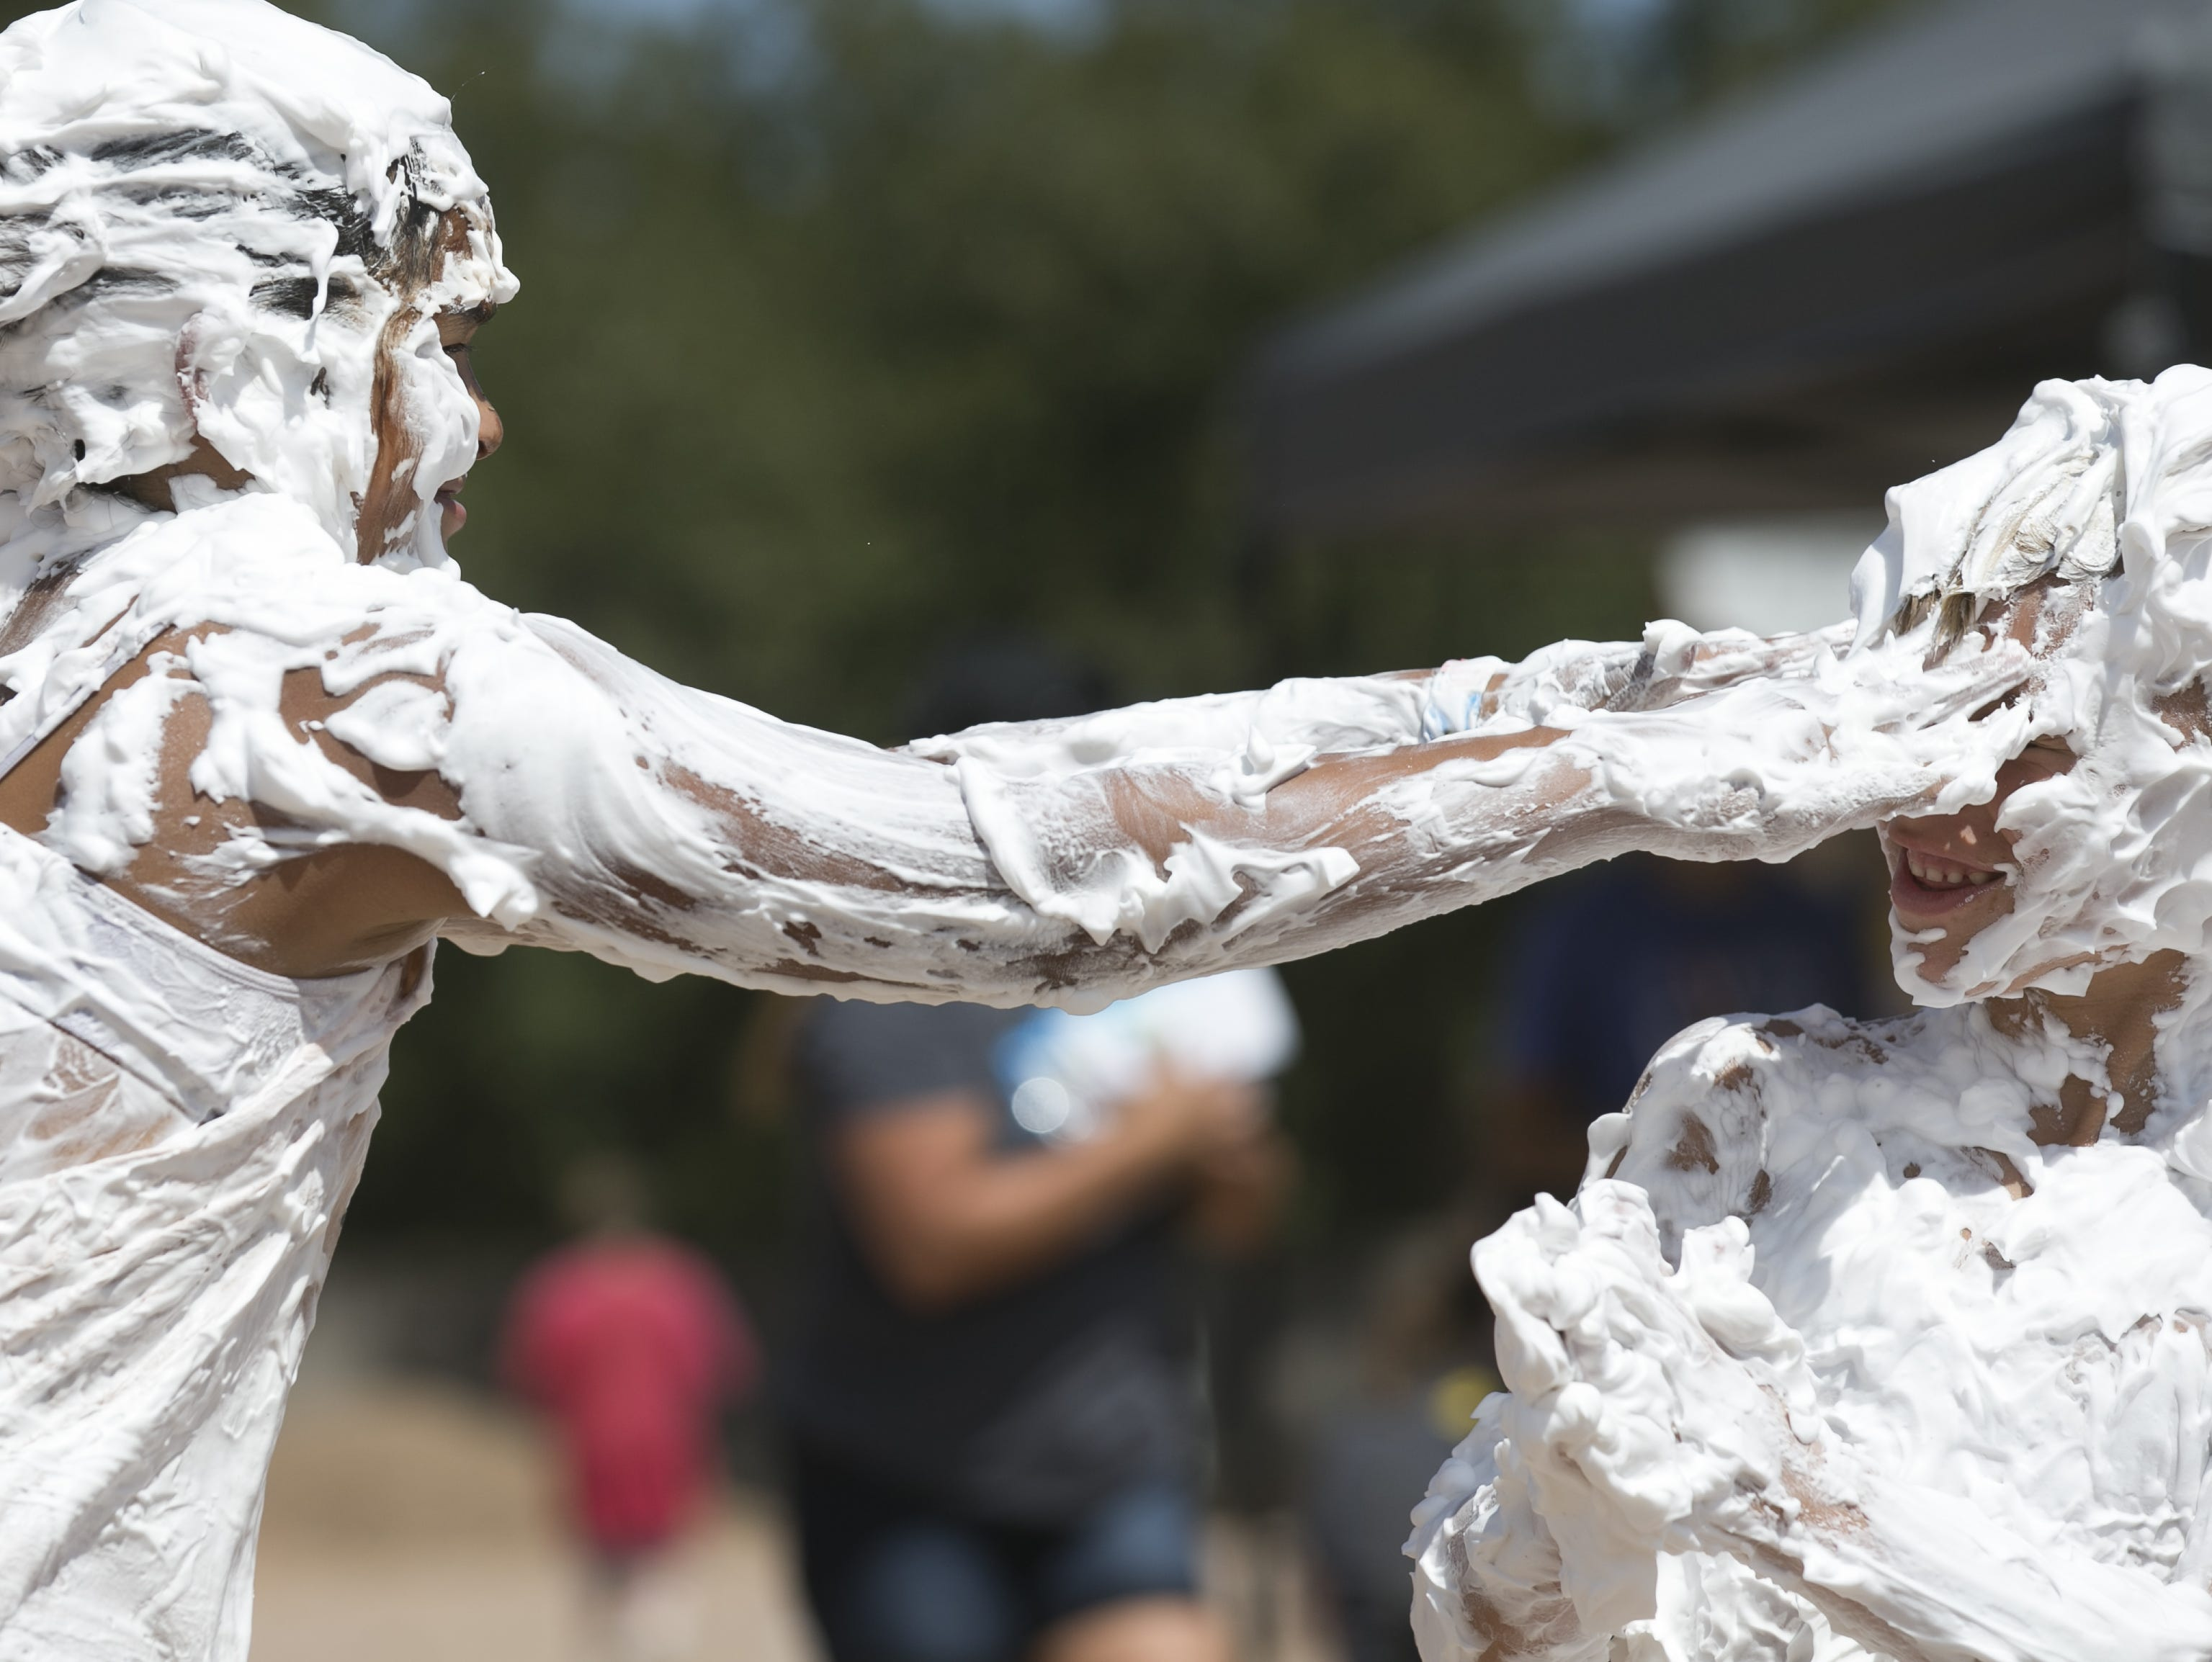 10-year-old Thalia Loya (left) rubs shaving cream in 6-year-old Easton Tamuty's face (right) at the third annual Messy Fest in Queen Creek on Saturday, Sept. 15, 2018.